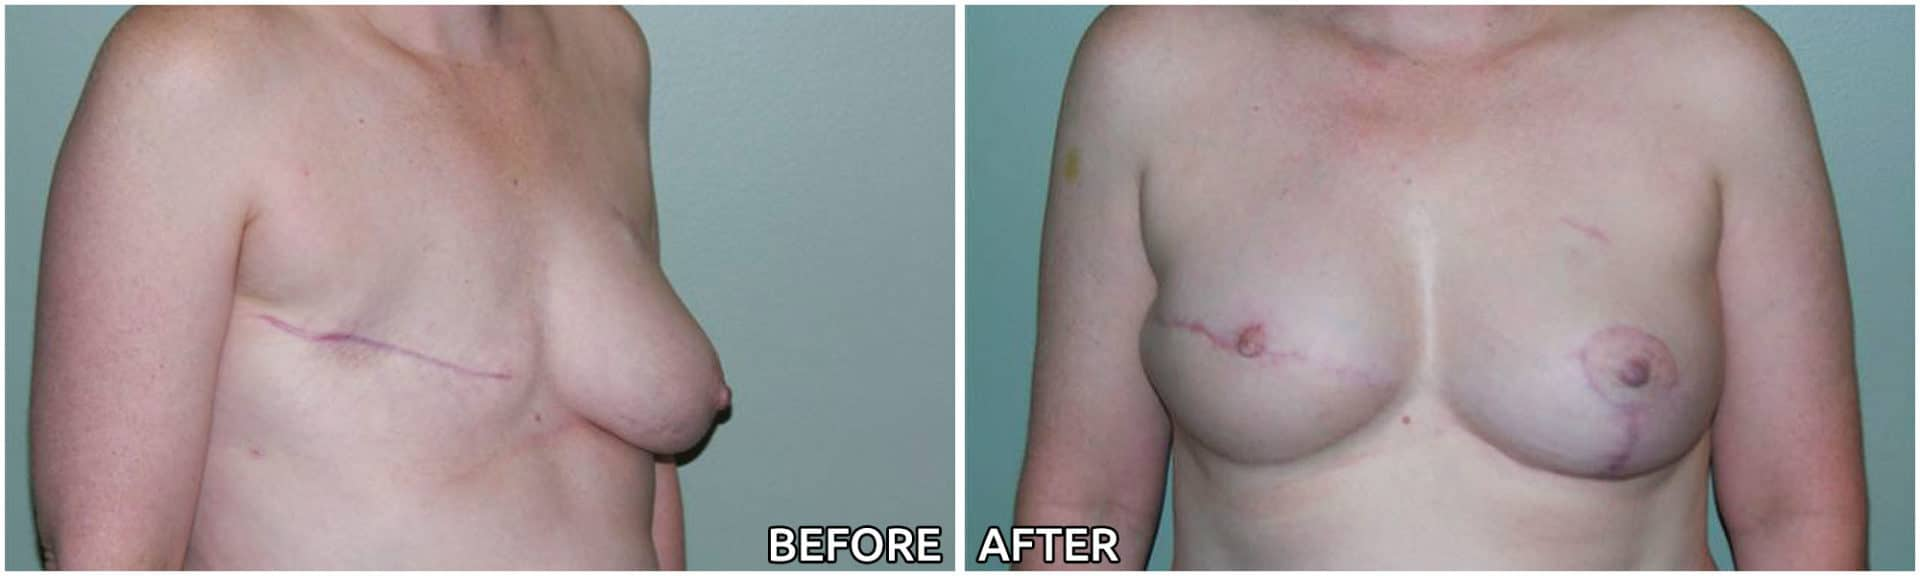 breast-reconstruction11